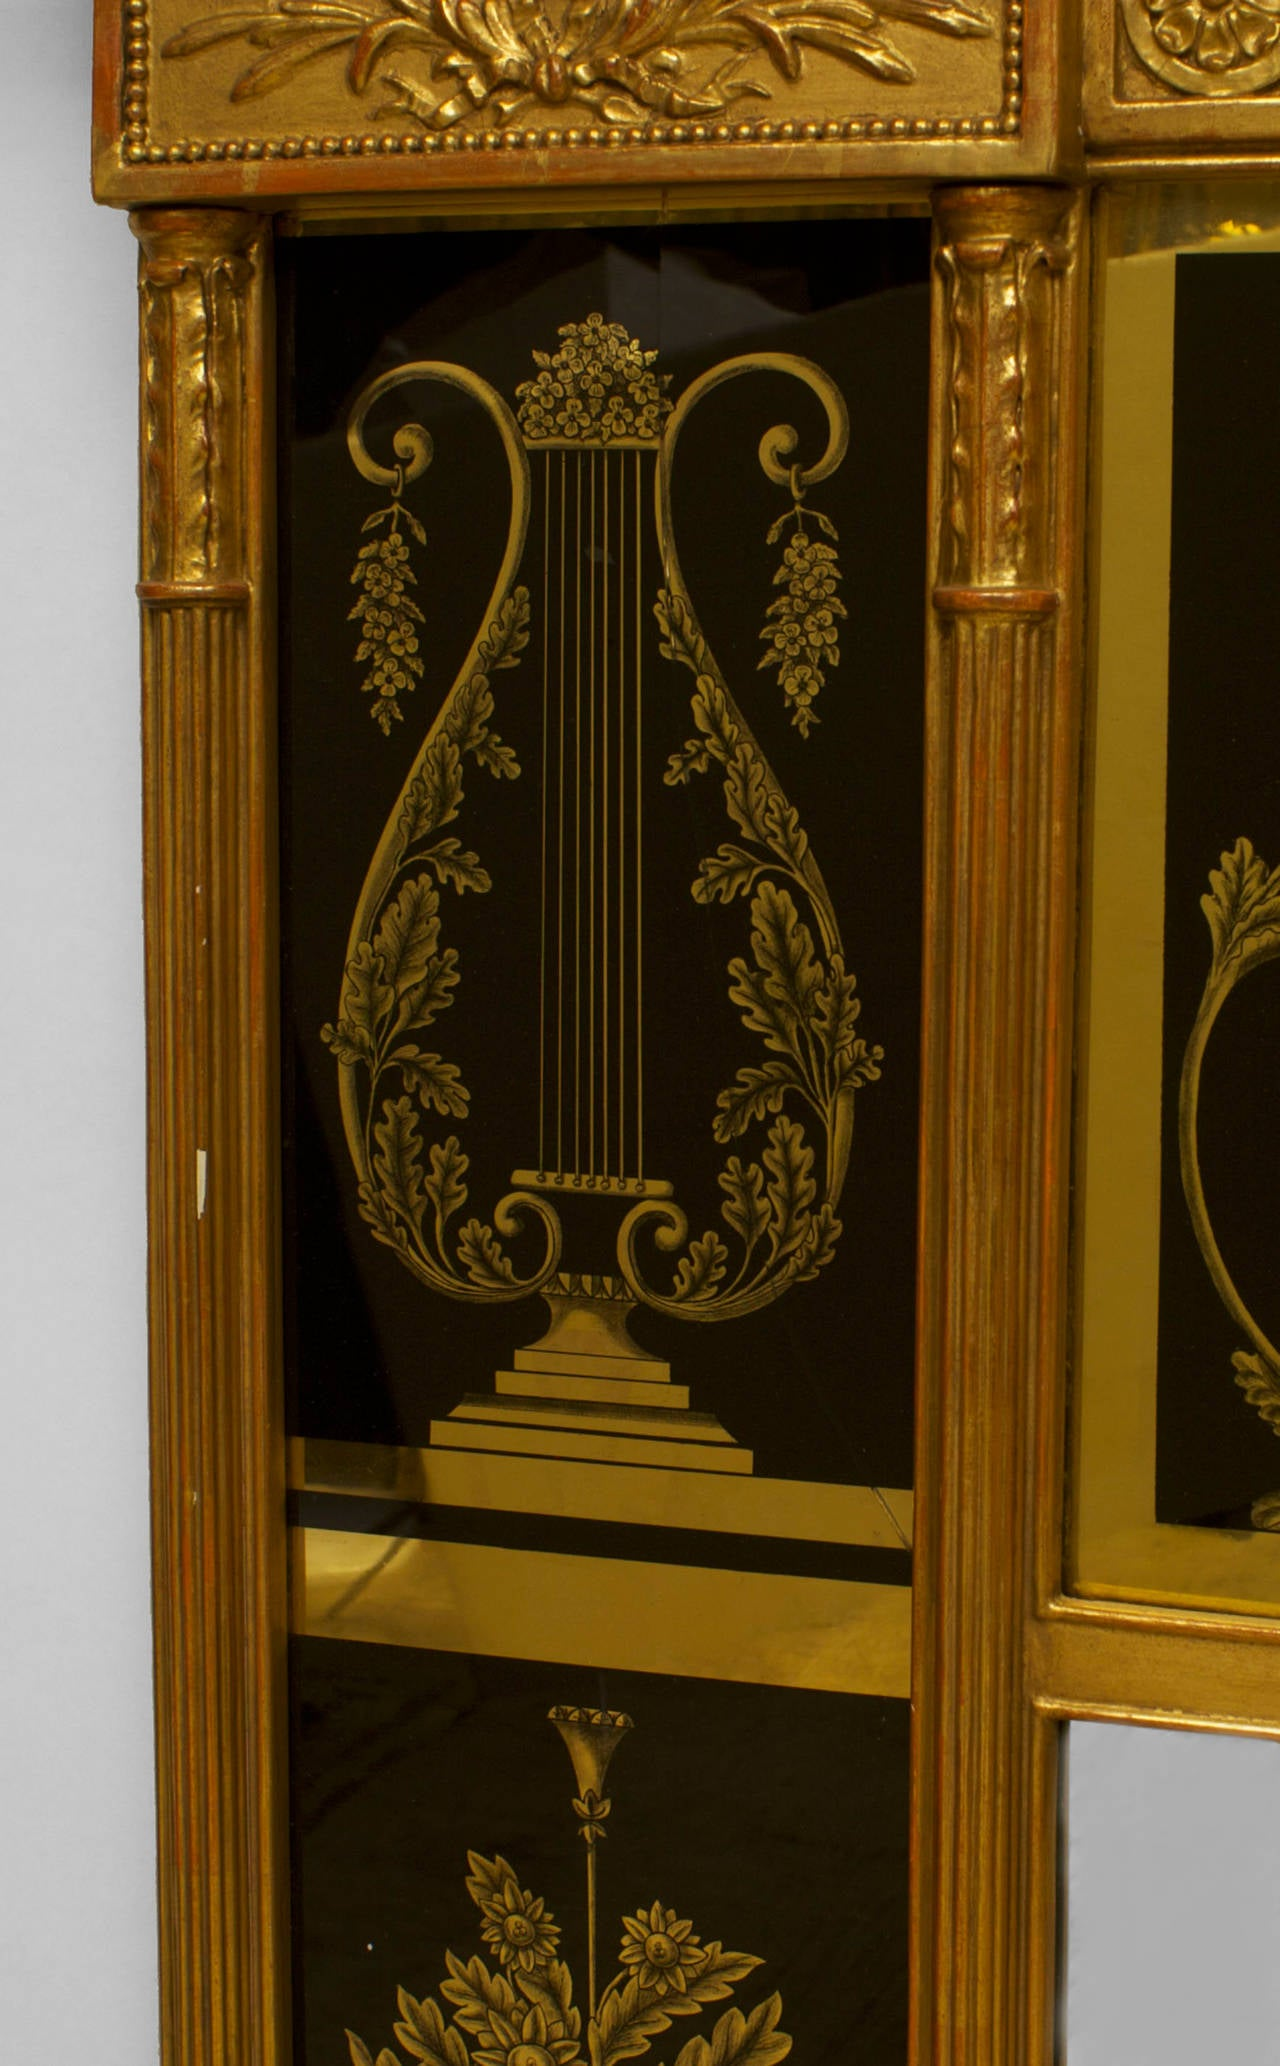 19th Century Italian Neoclassical Wall Mirror Framed in Reverse Painted Glass For Sale 1